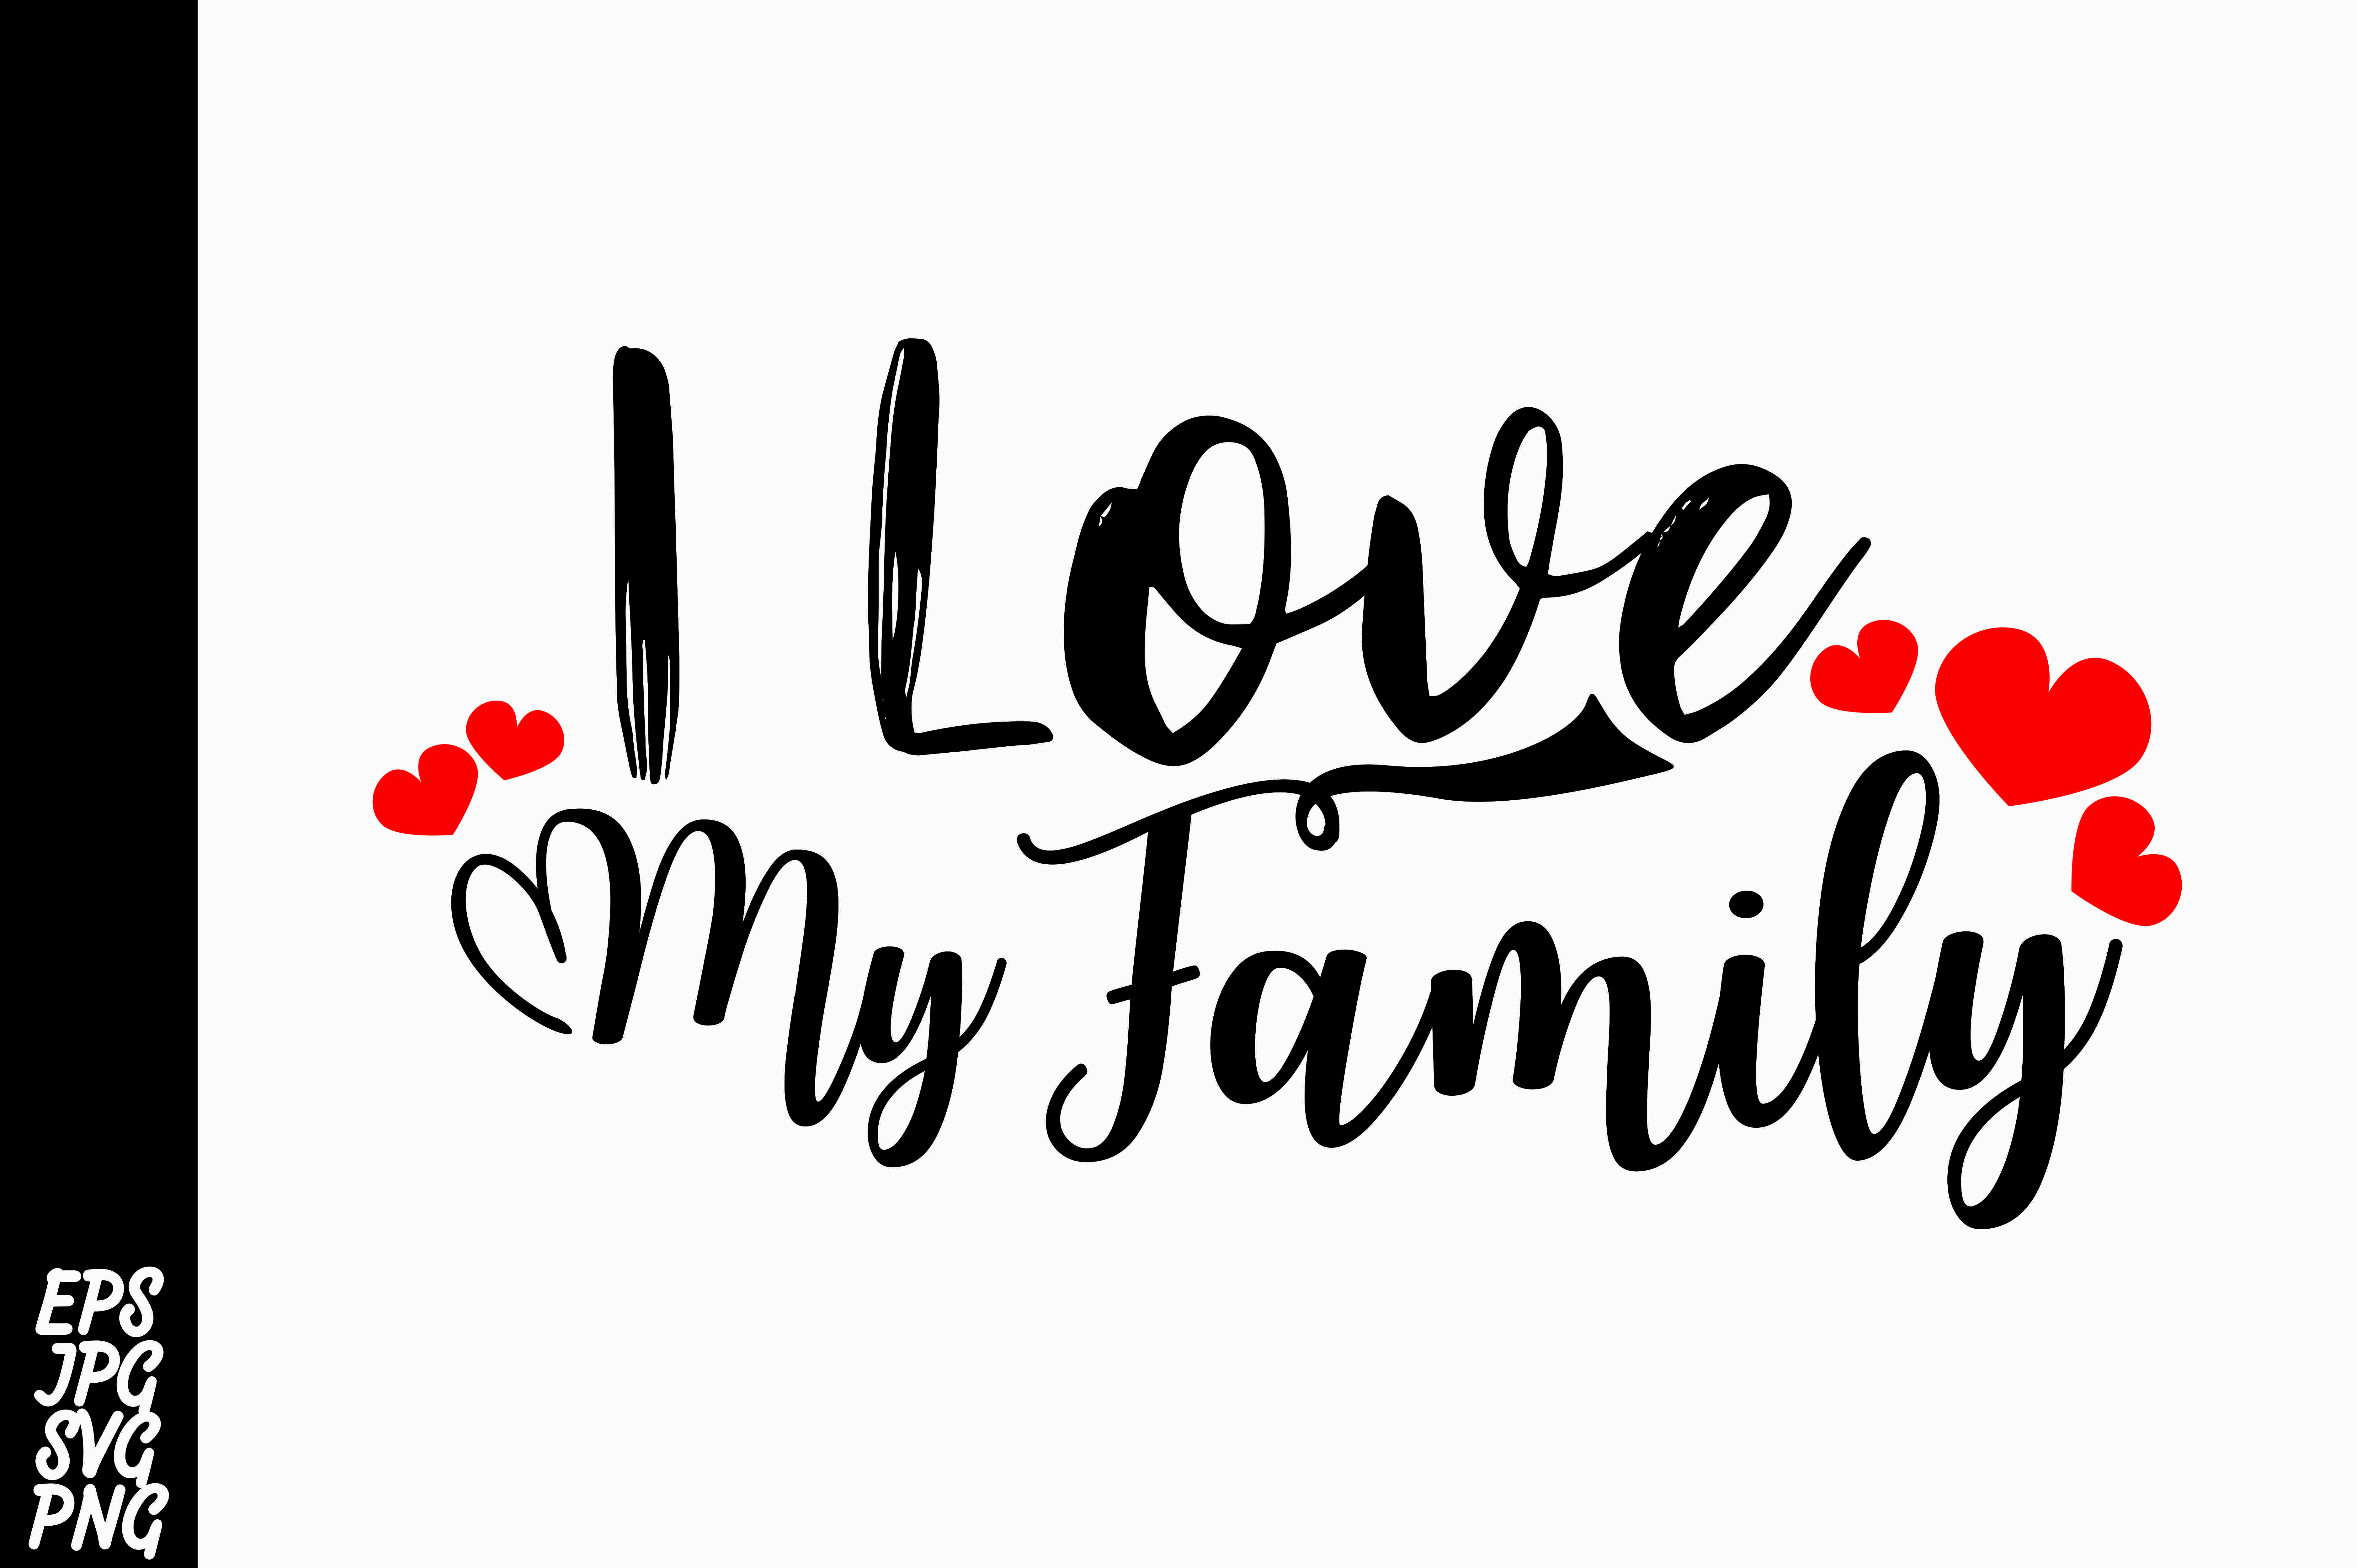 I Love Family Png - I Love My Family SVG (Graphic) by Arsa Adjie · Creative Fabrica